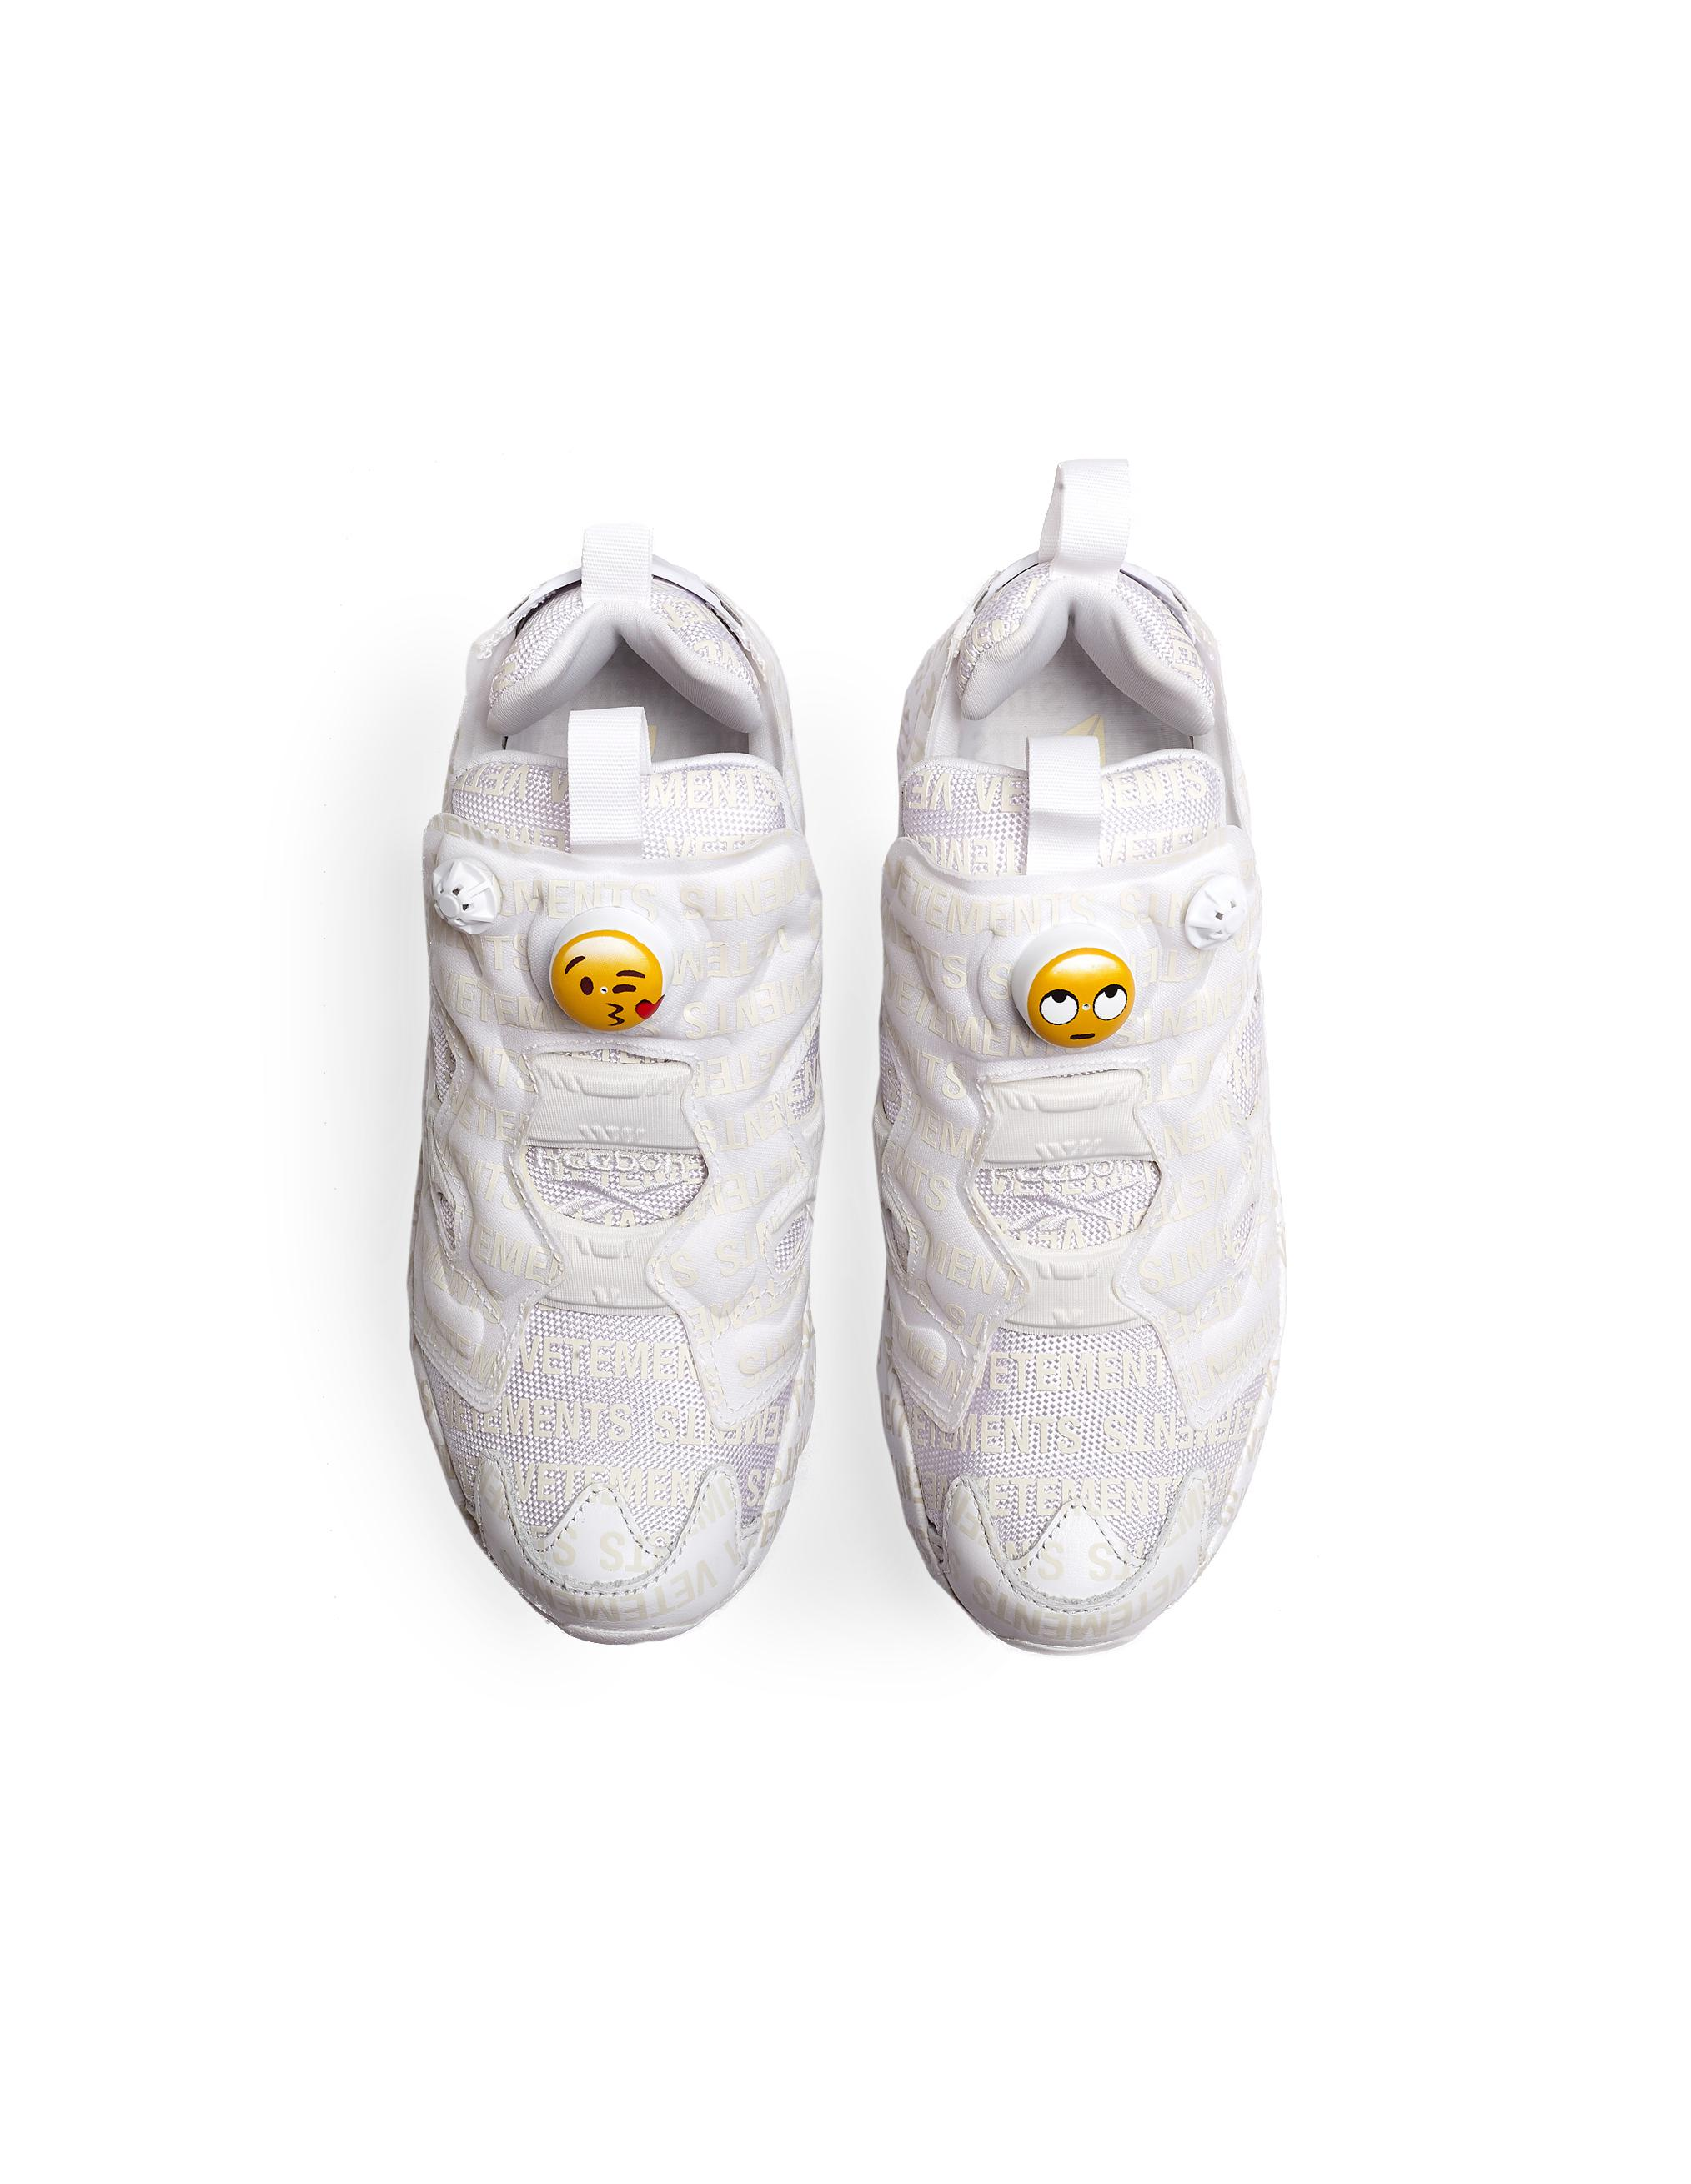 fbb18dd58719c3 Lyst - Vetements Reebok Instapump Fury Emoji Sneakers in White